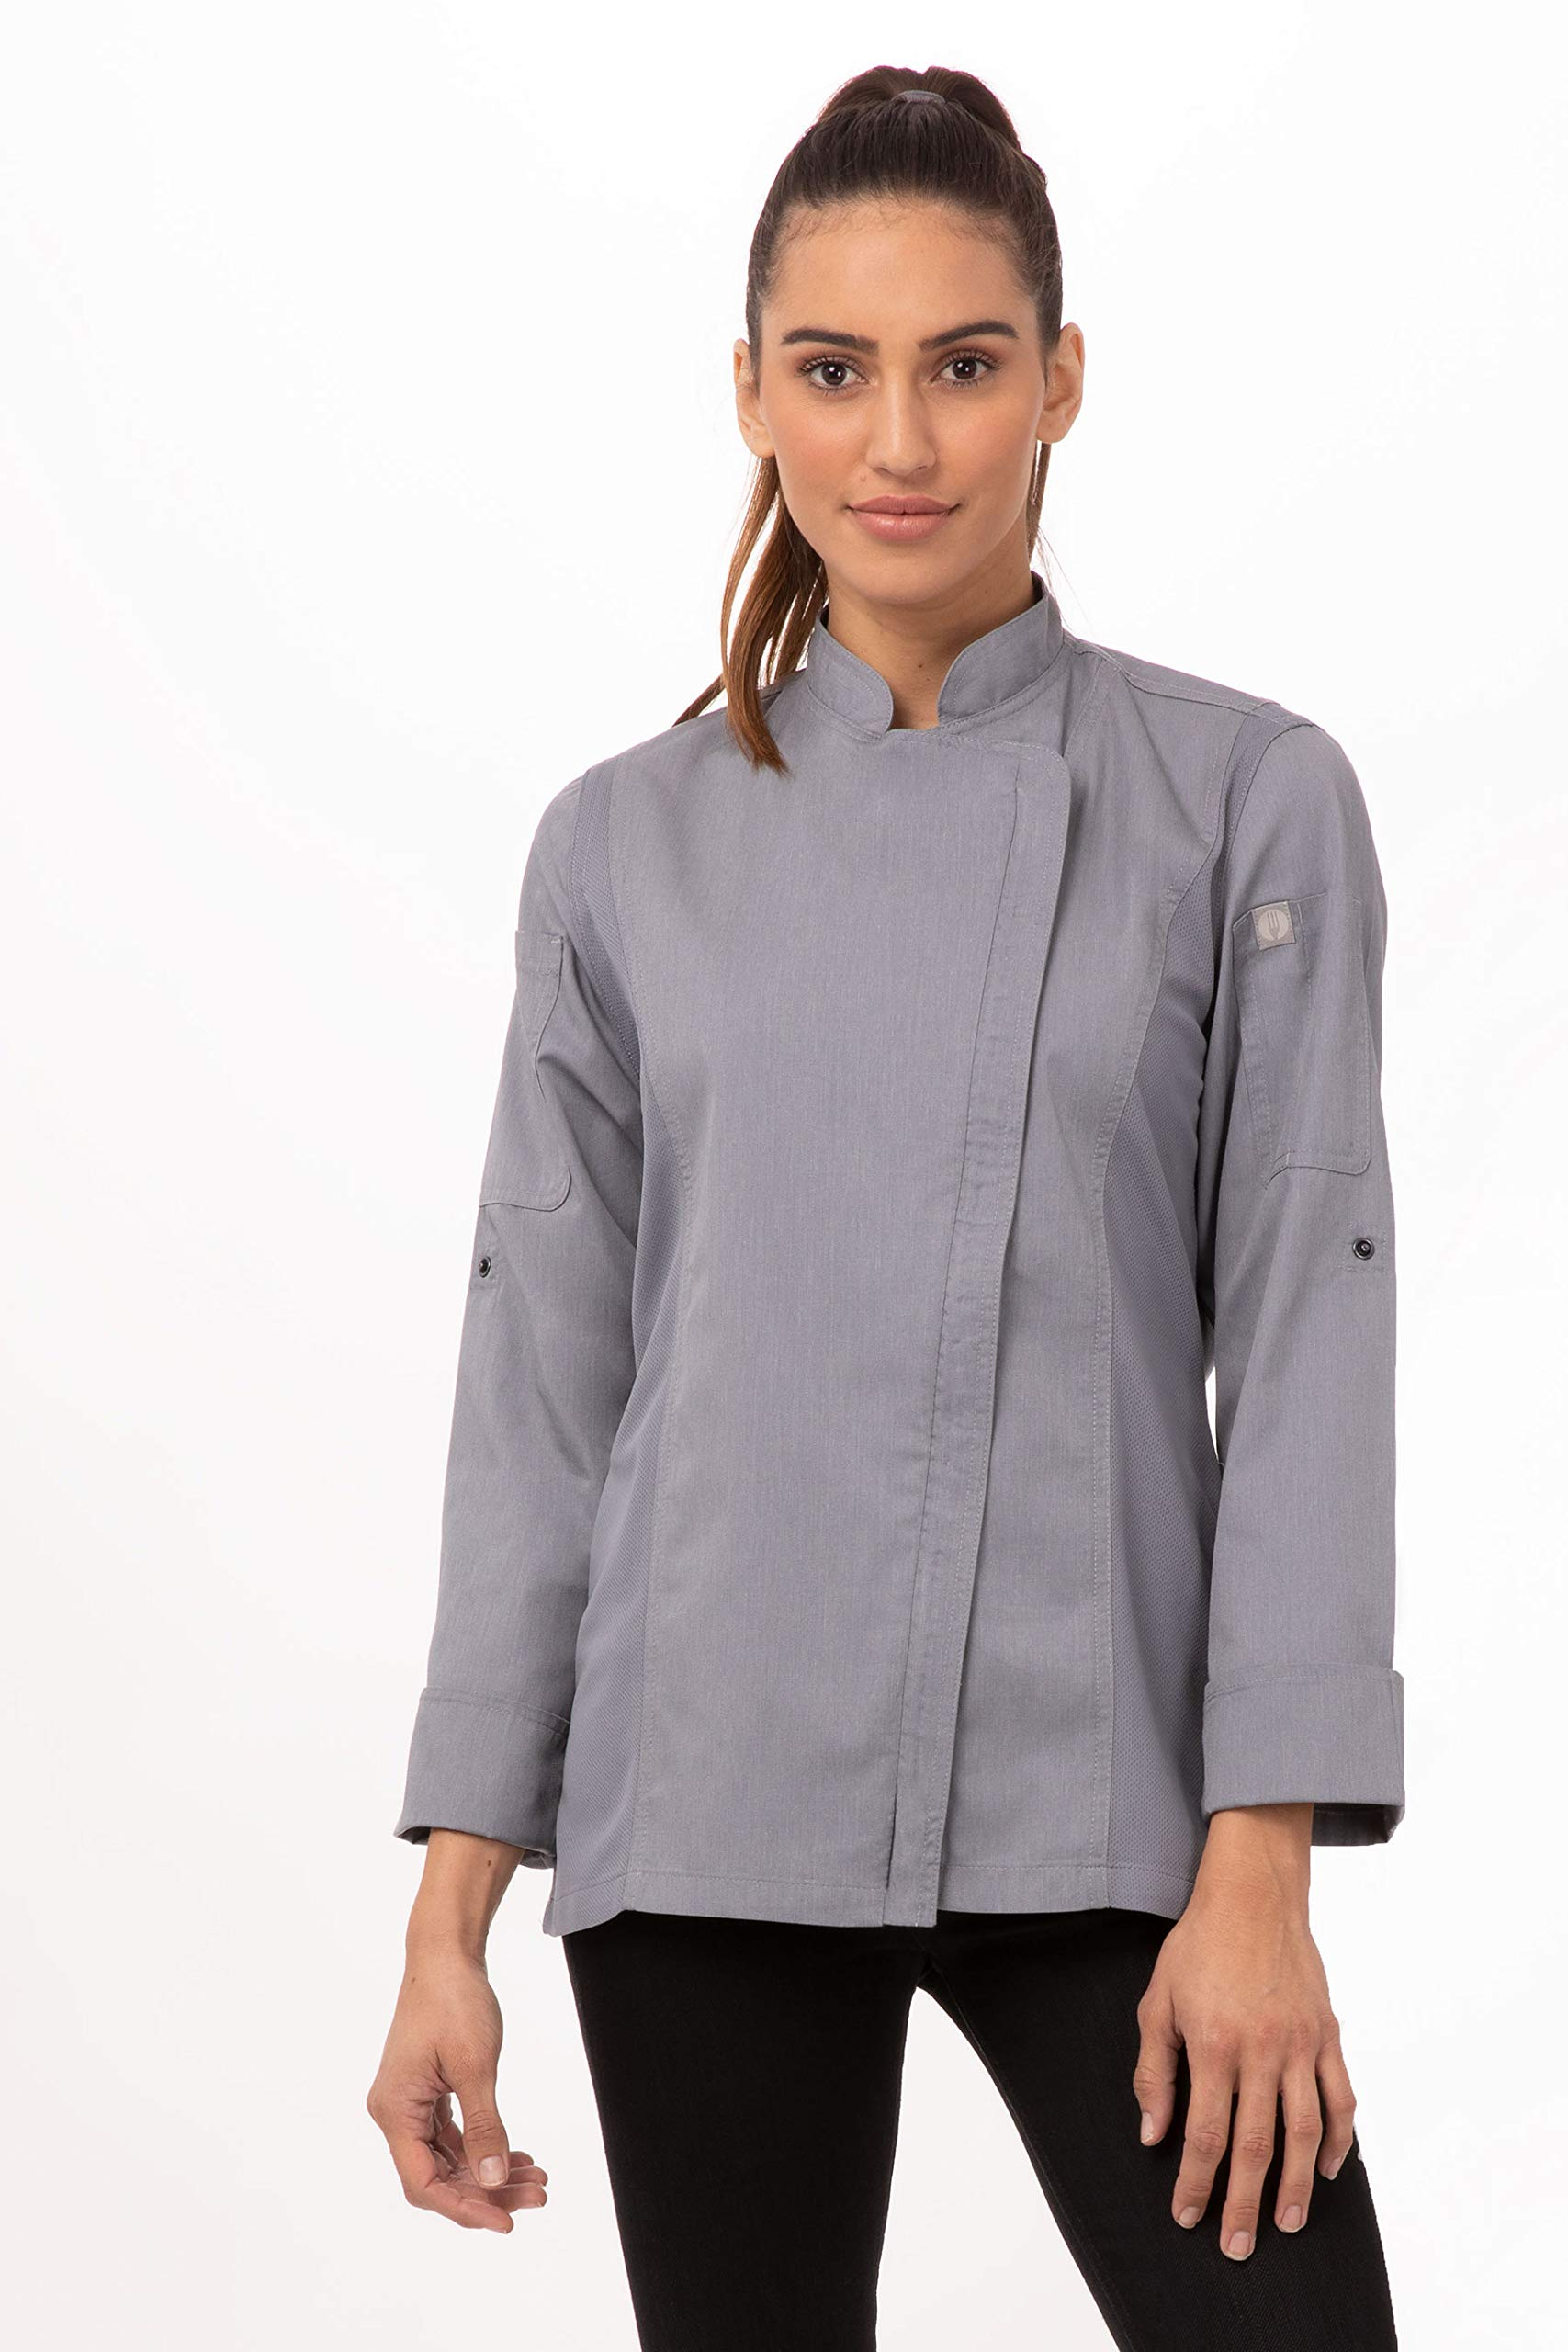 Chef Works Women's Hartford Chef Coat, Gray, XS by Chef Works